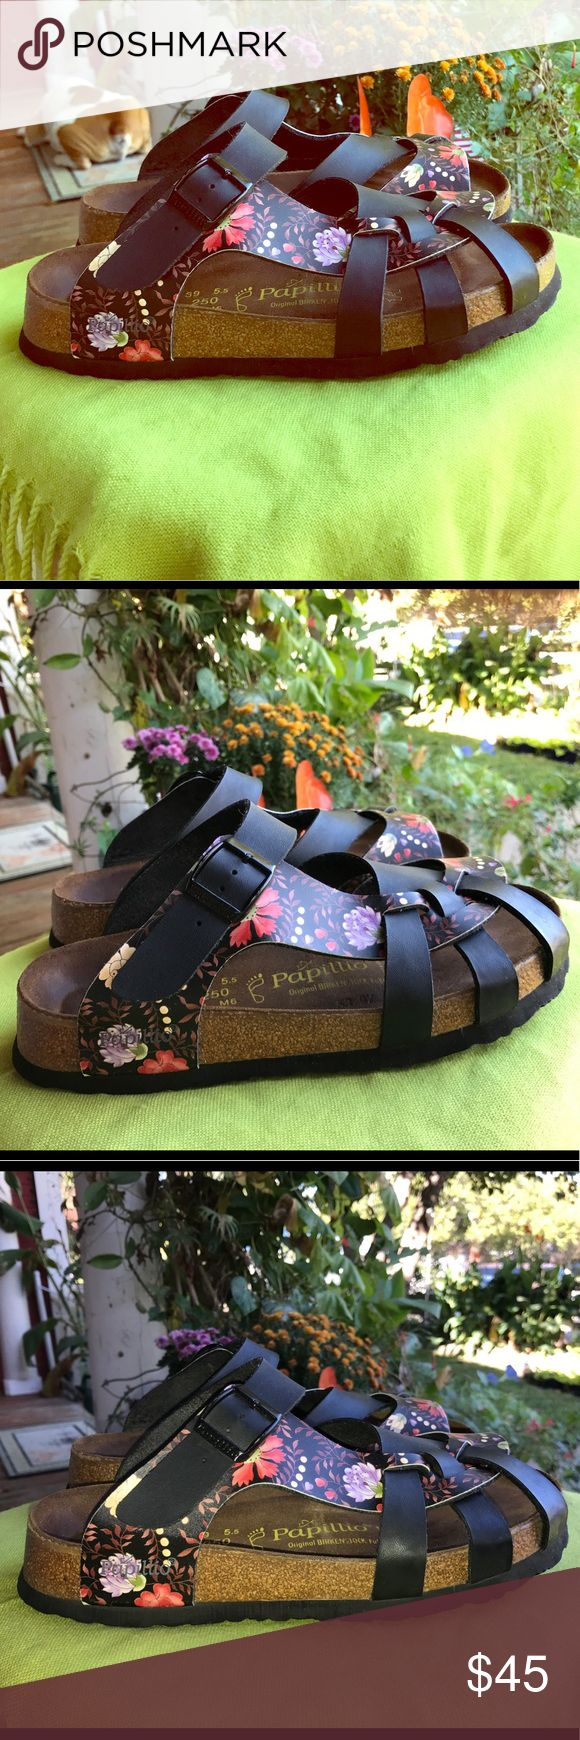 Papillio by Birkenstock floral sandals Great used condition with some scuffs on the floral design on the inner shoe by big toes. Other than that, they are EUC maybe worn a couple times. The scuffing could be expected as they become the distressed look with more wear? They are definitely unique and not broken in. I just wiped them with leather cleaner so the foot beds look much darker than before cleaning, yet sanitary. Birkenstock Shoes Sandals